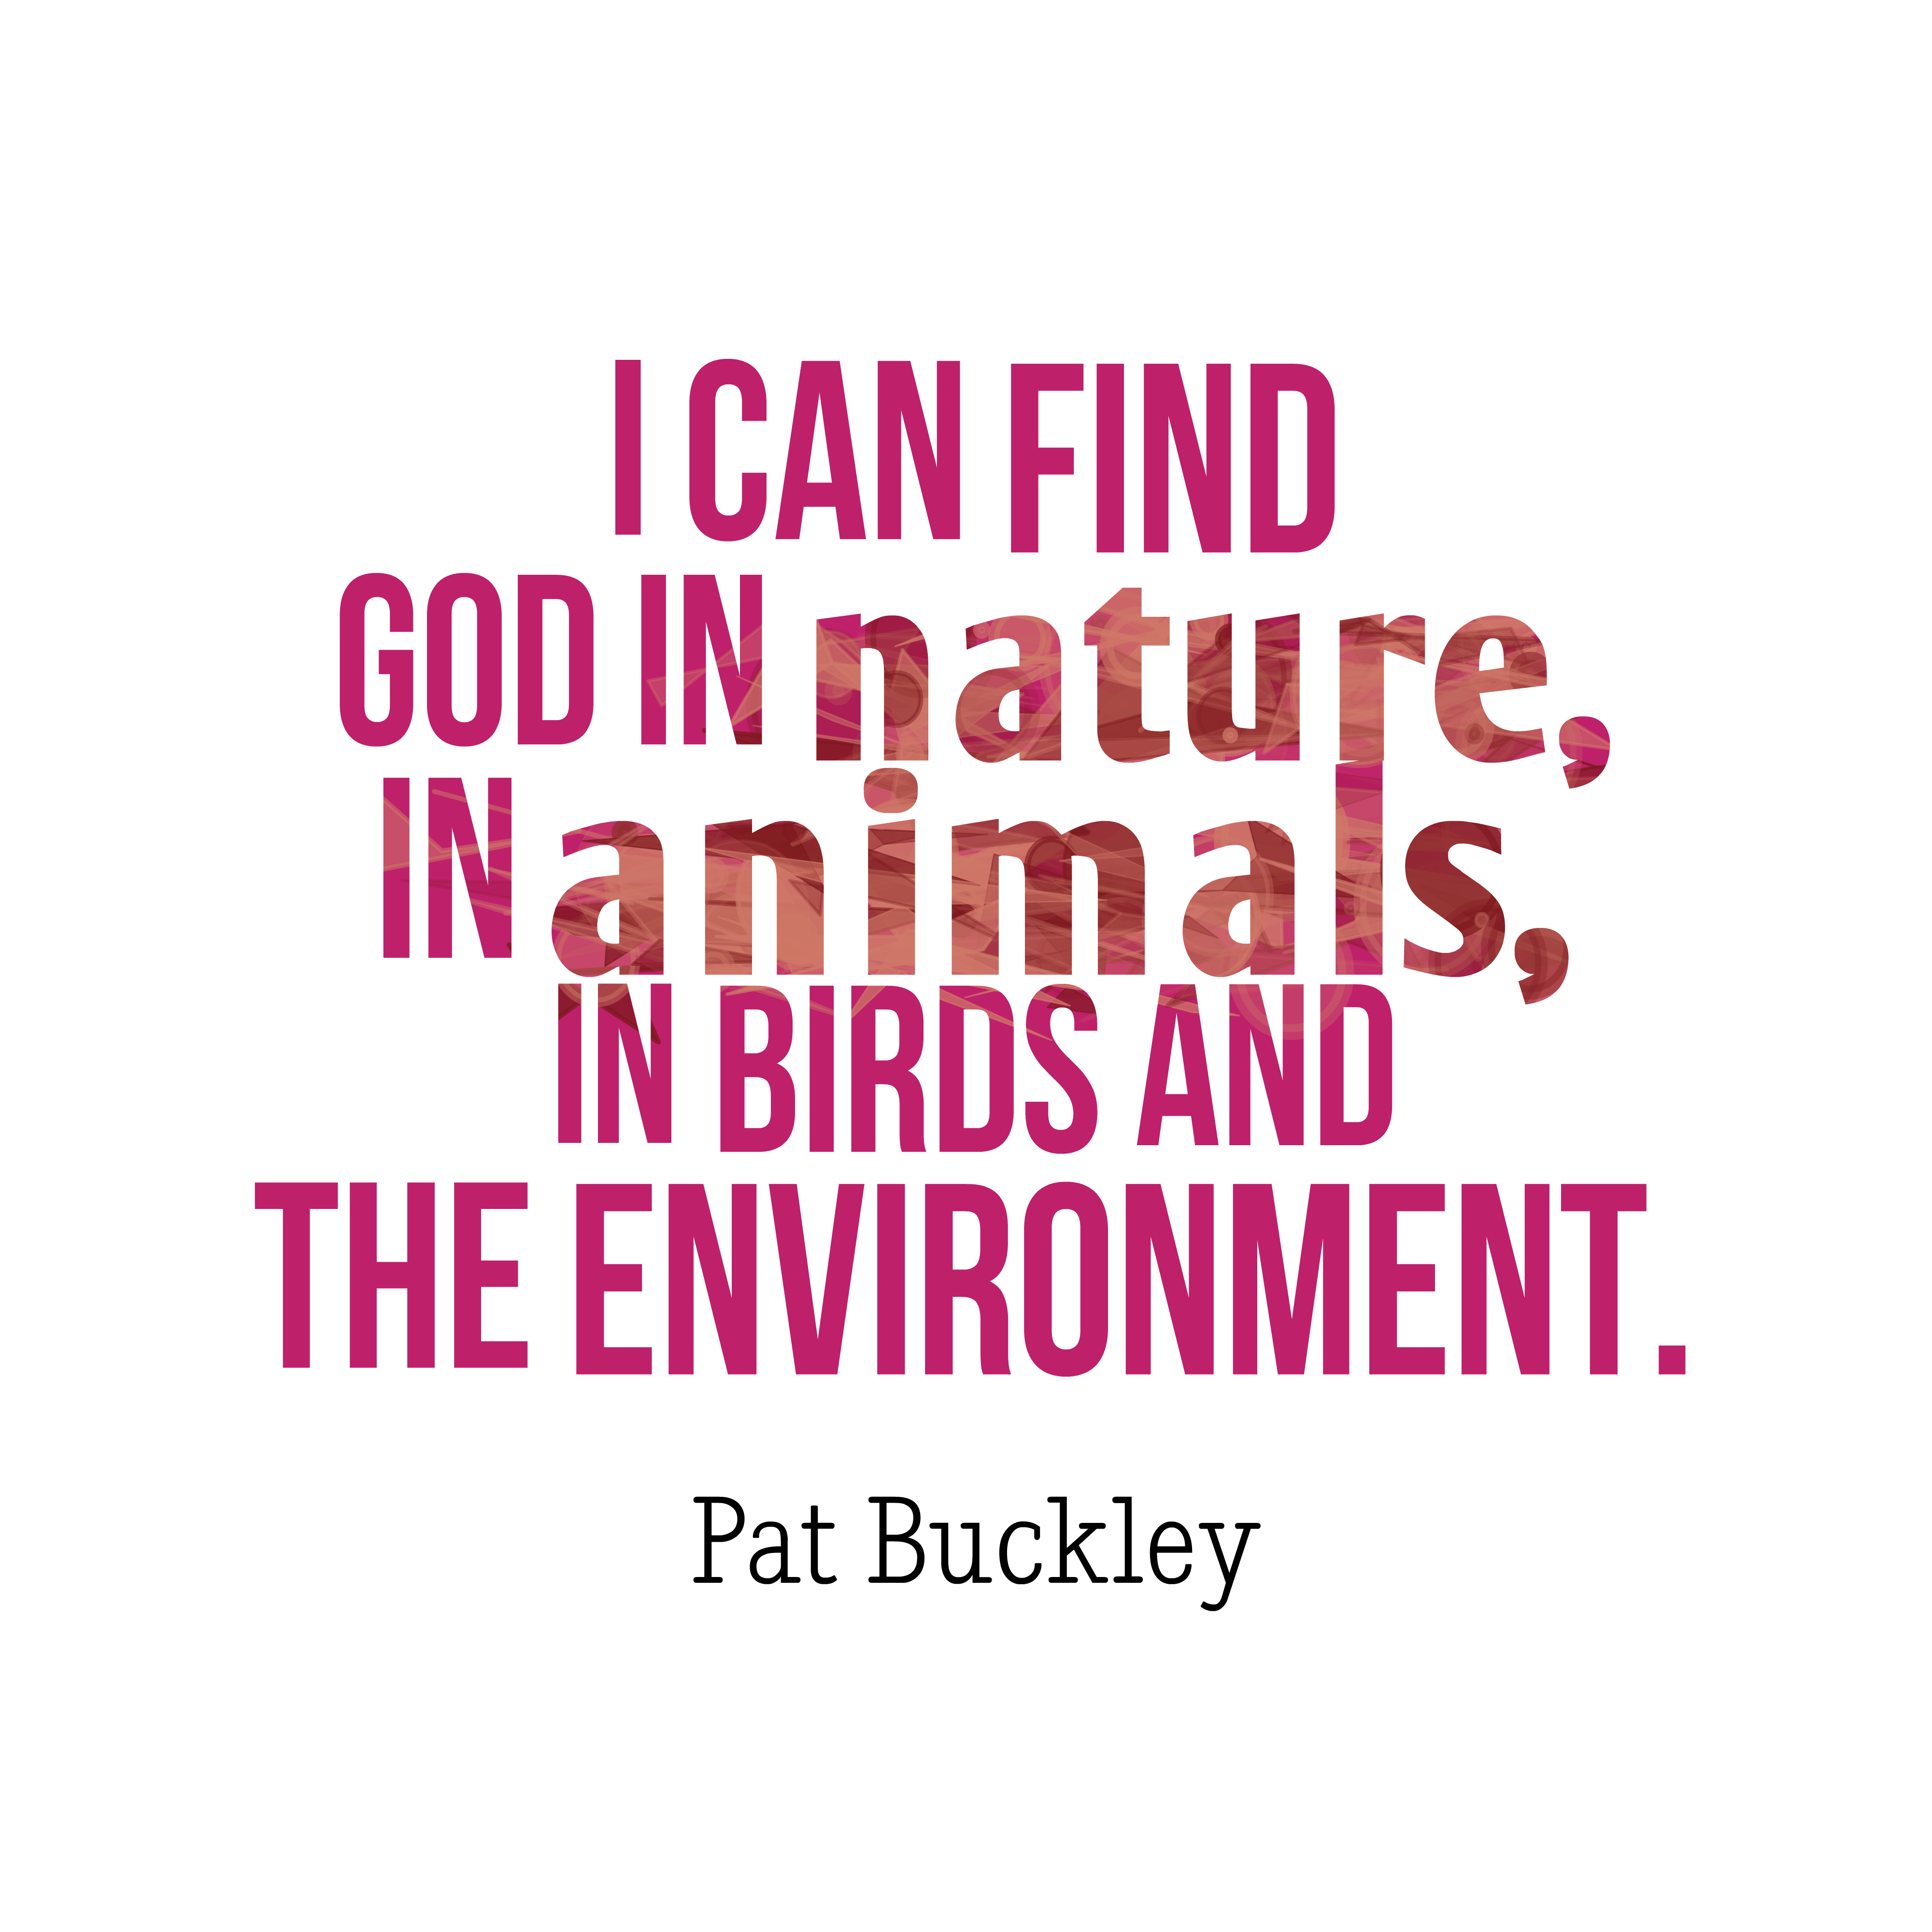 Picture Pat Buckley quote about envirnmental ...